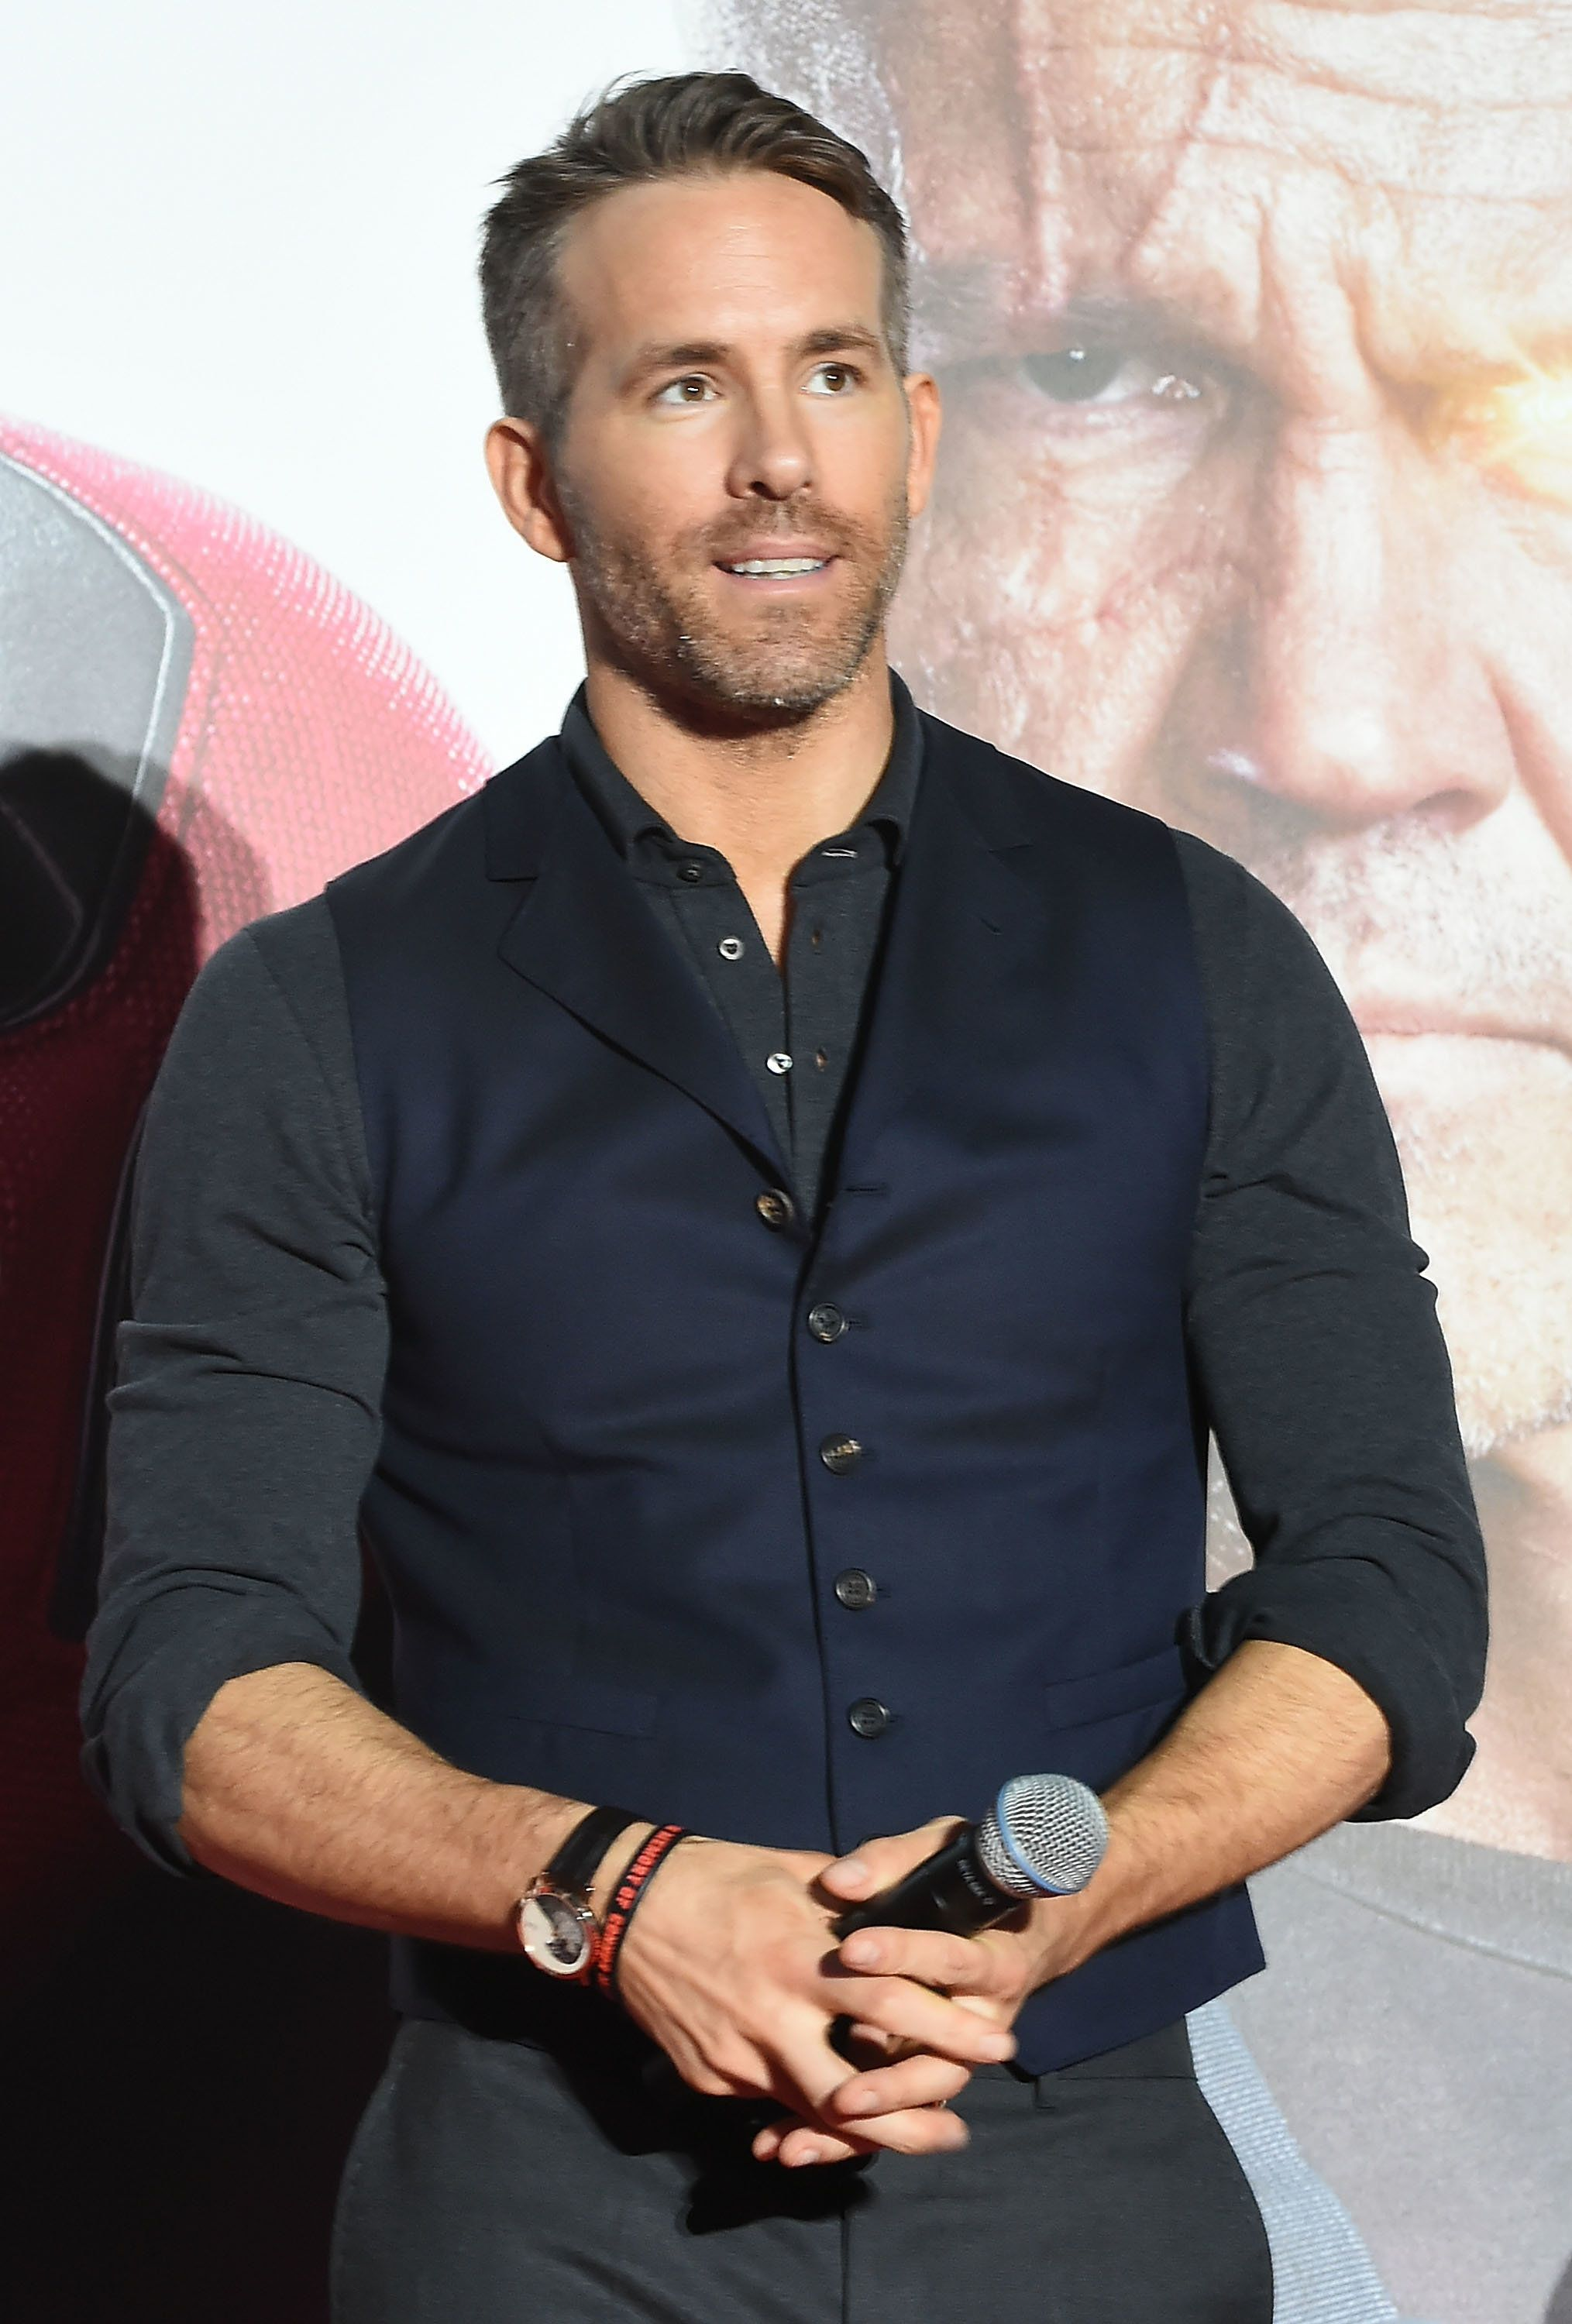 TOKYO, JAPAN - MAY 29:  Ryan Reynolds attends the 'Deadpool 2' Tokyo Premiere at the Roppongi Hills on May 29, 2018 in Tokyo, Japan.  (Photo by Jun Sato/WireImage)